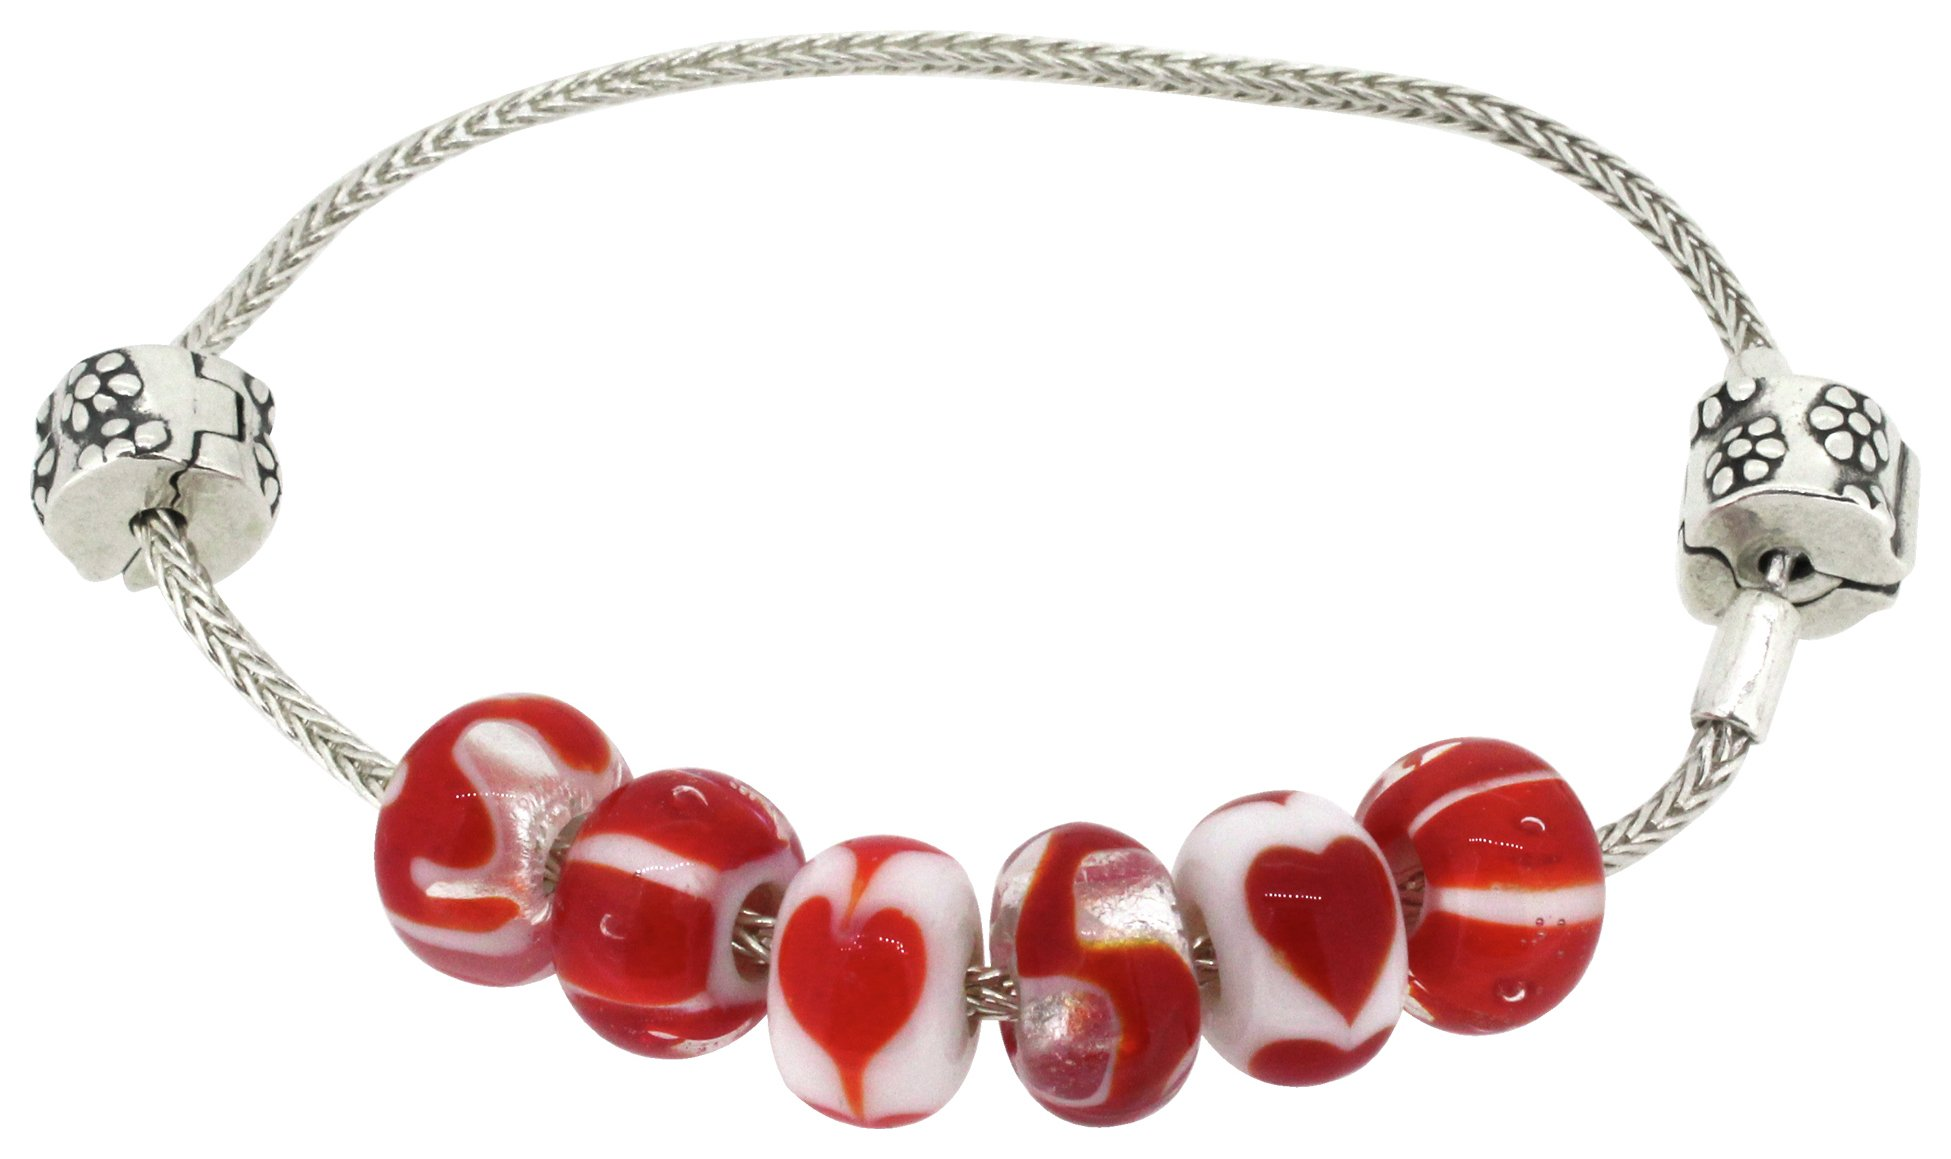 Miss Glitter Silver Made Up Red Bracelet with Stopper